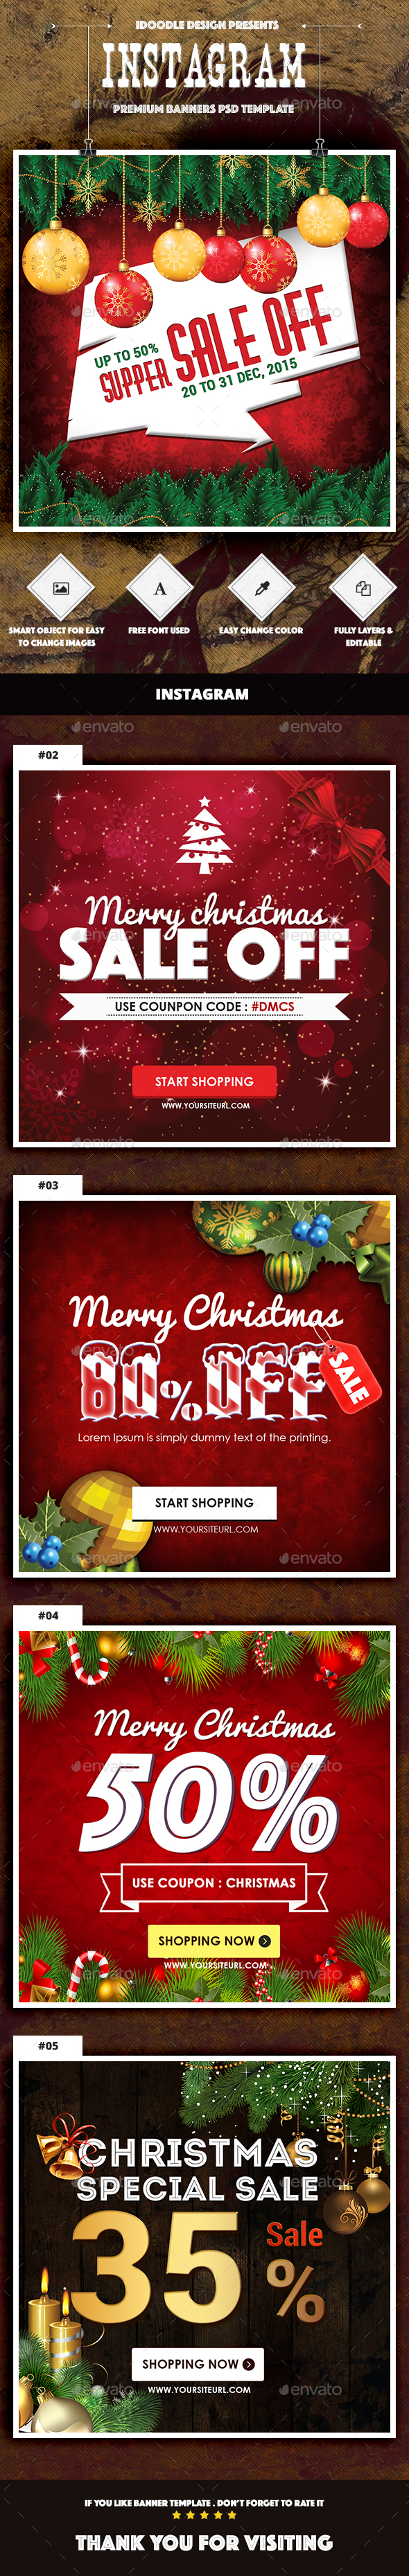 Christmas Instagram Banners Ads - Banners & Ads Web Elements